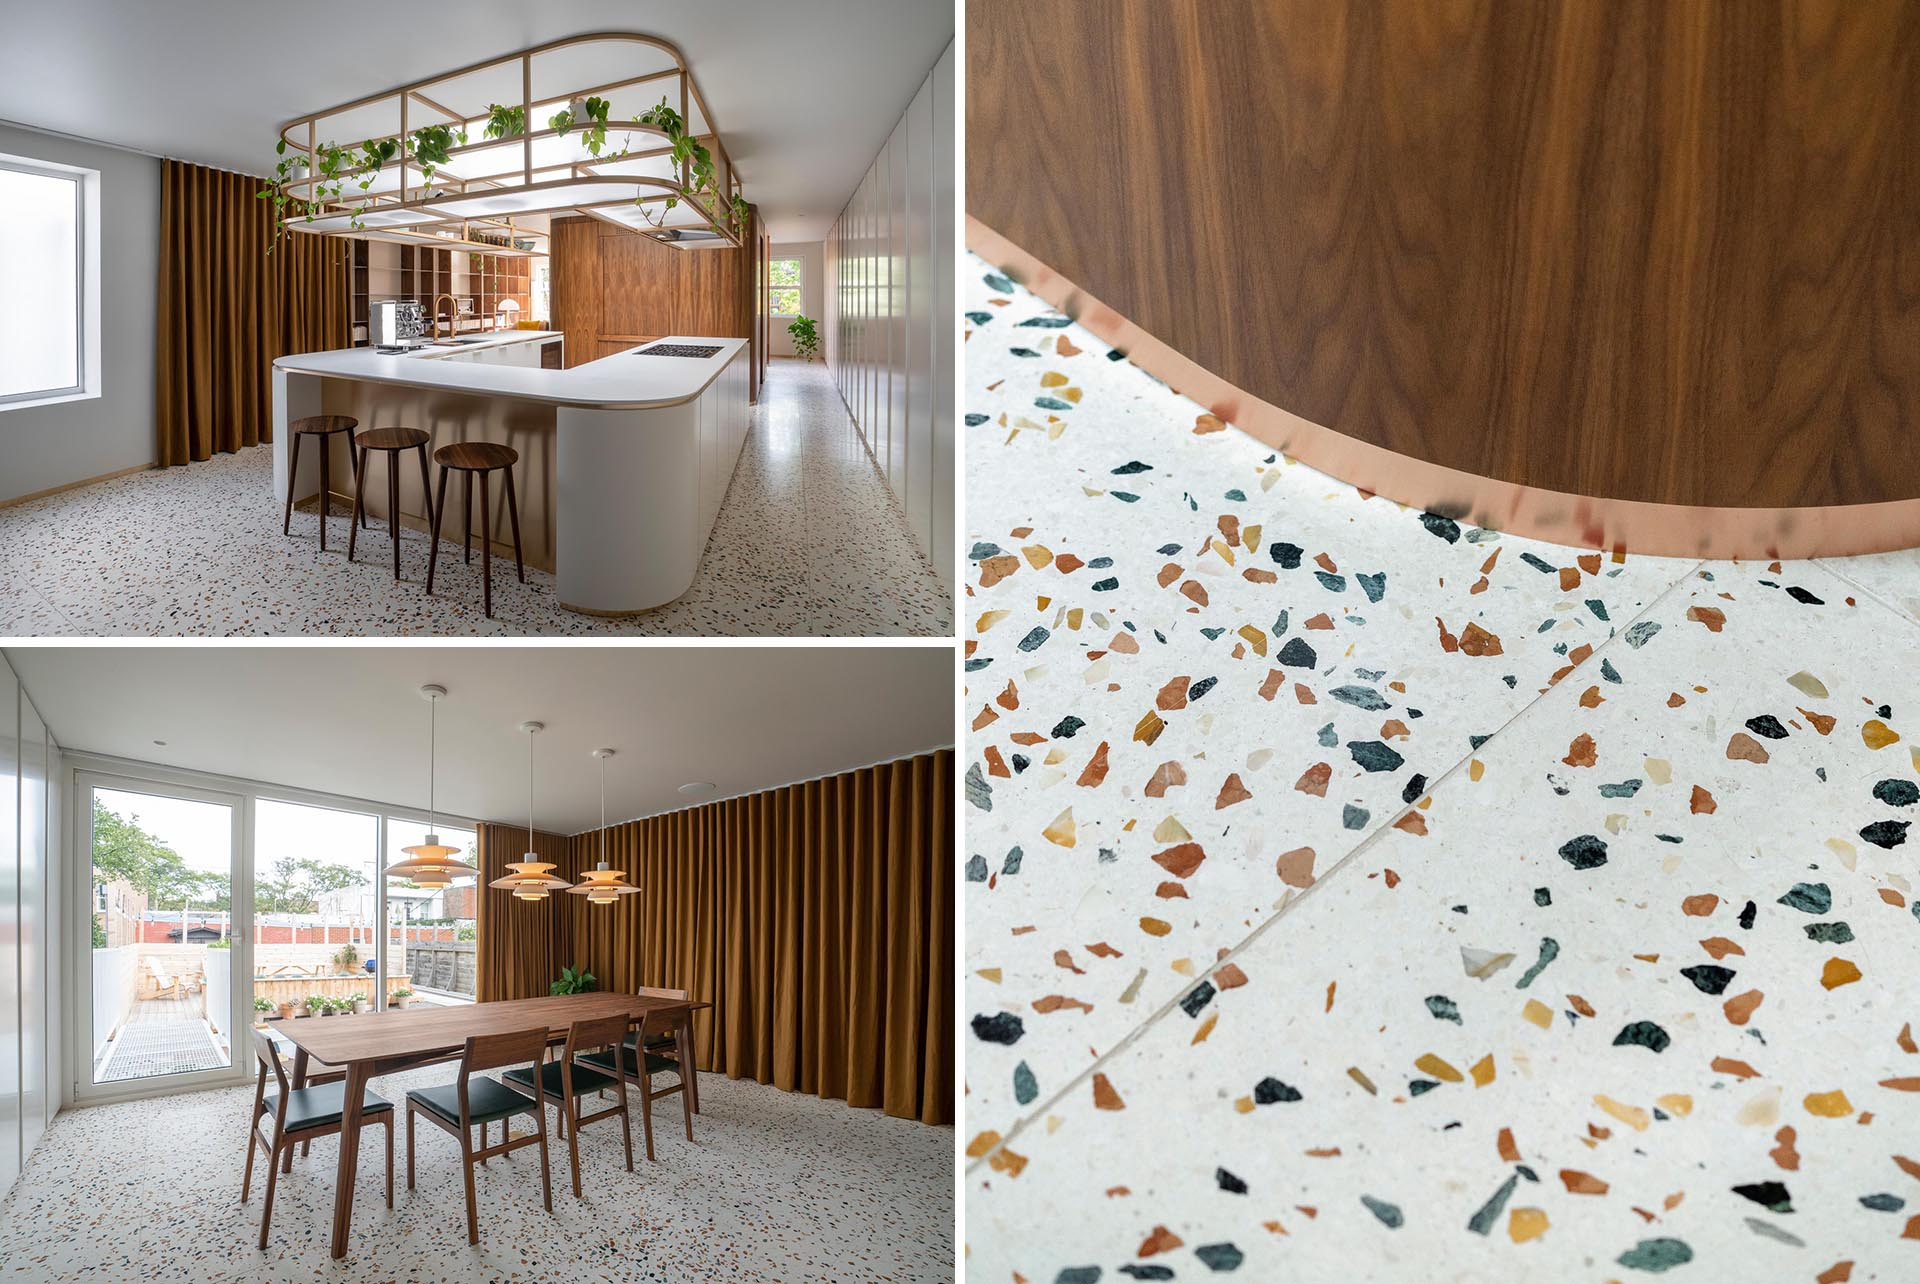 A modern interior with colorful terrazzo floors.